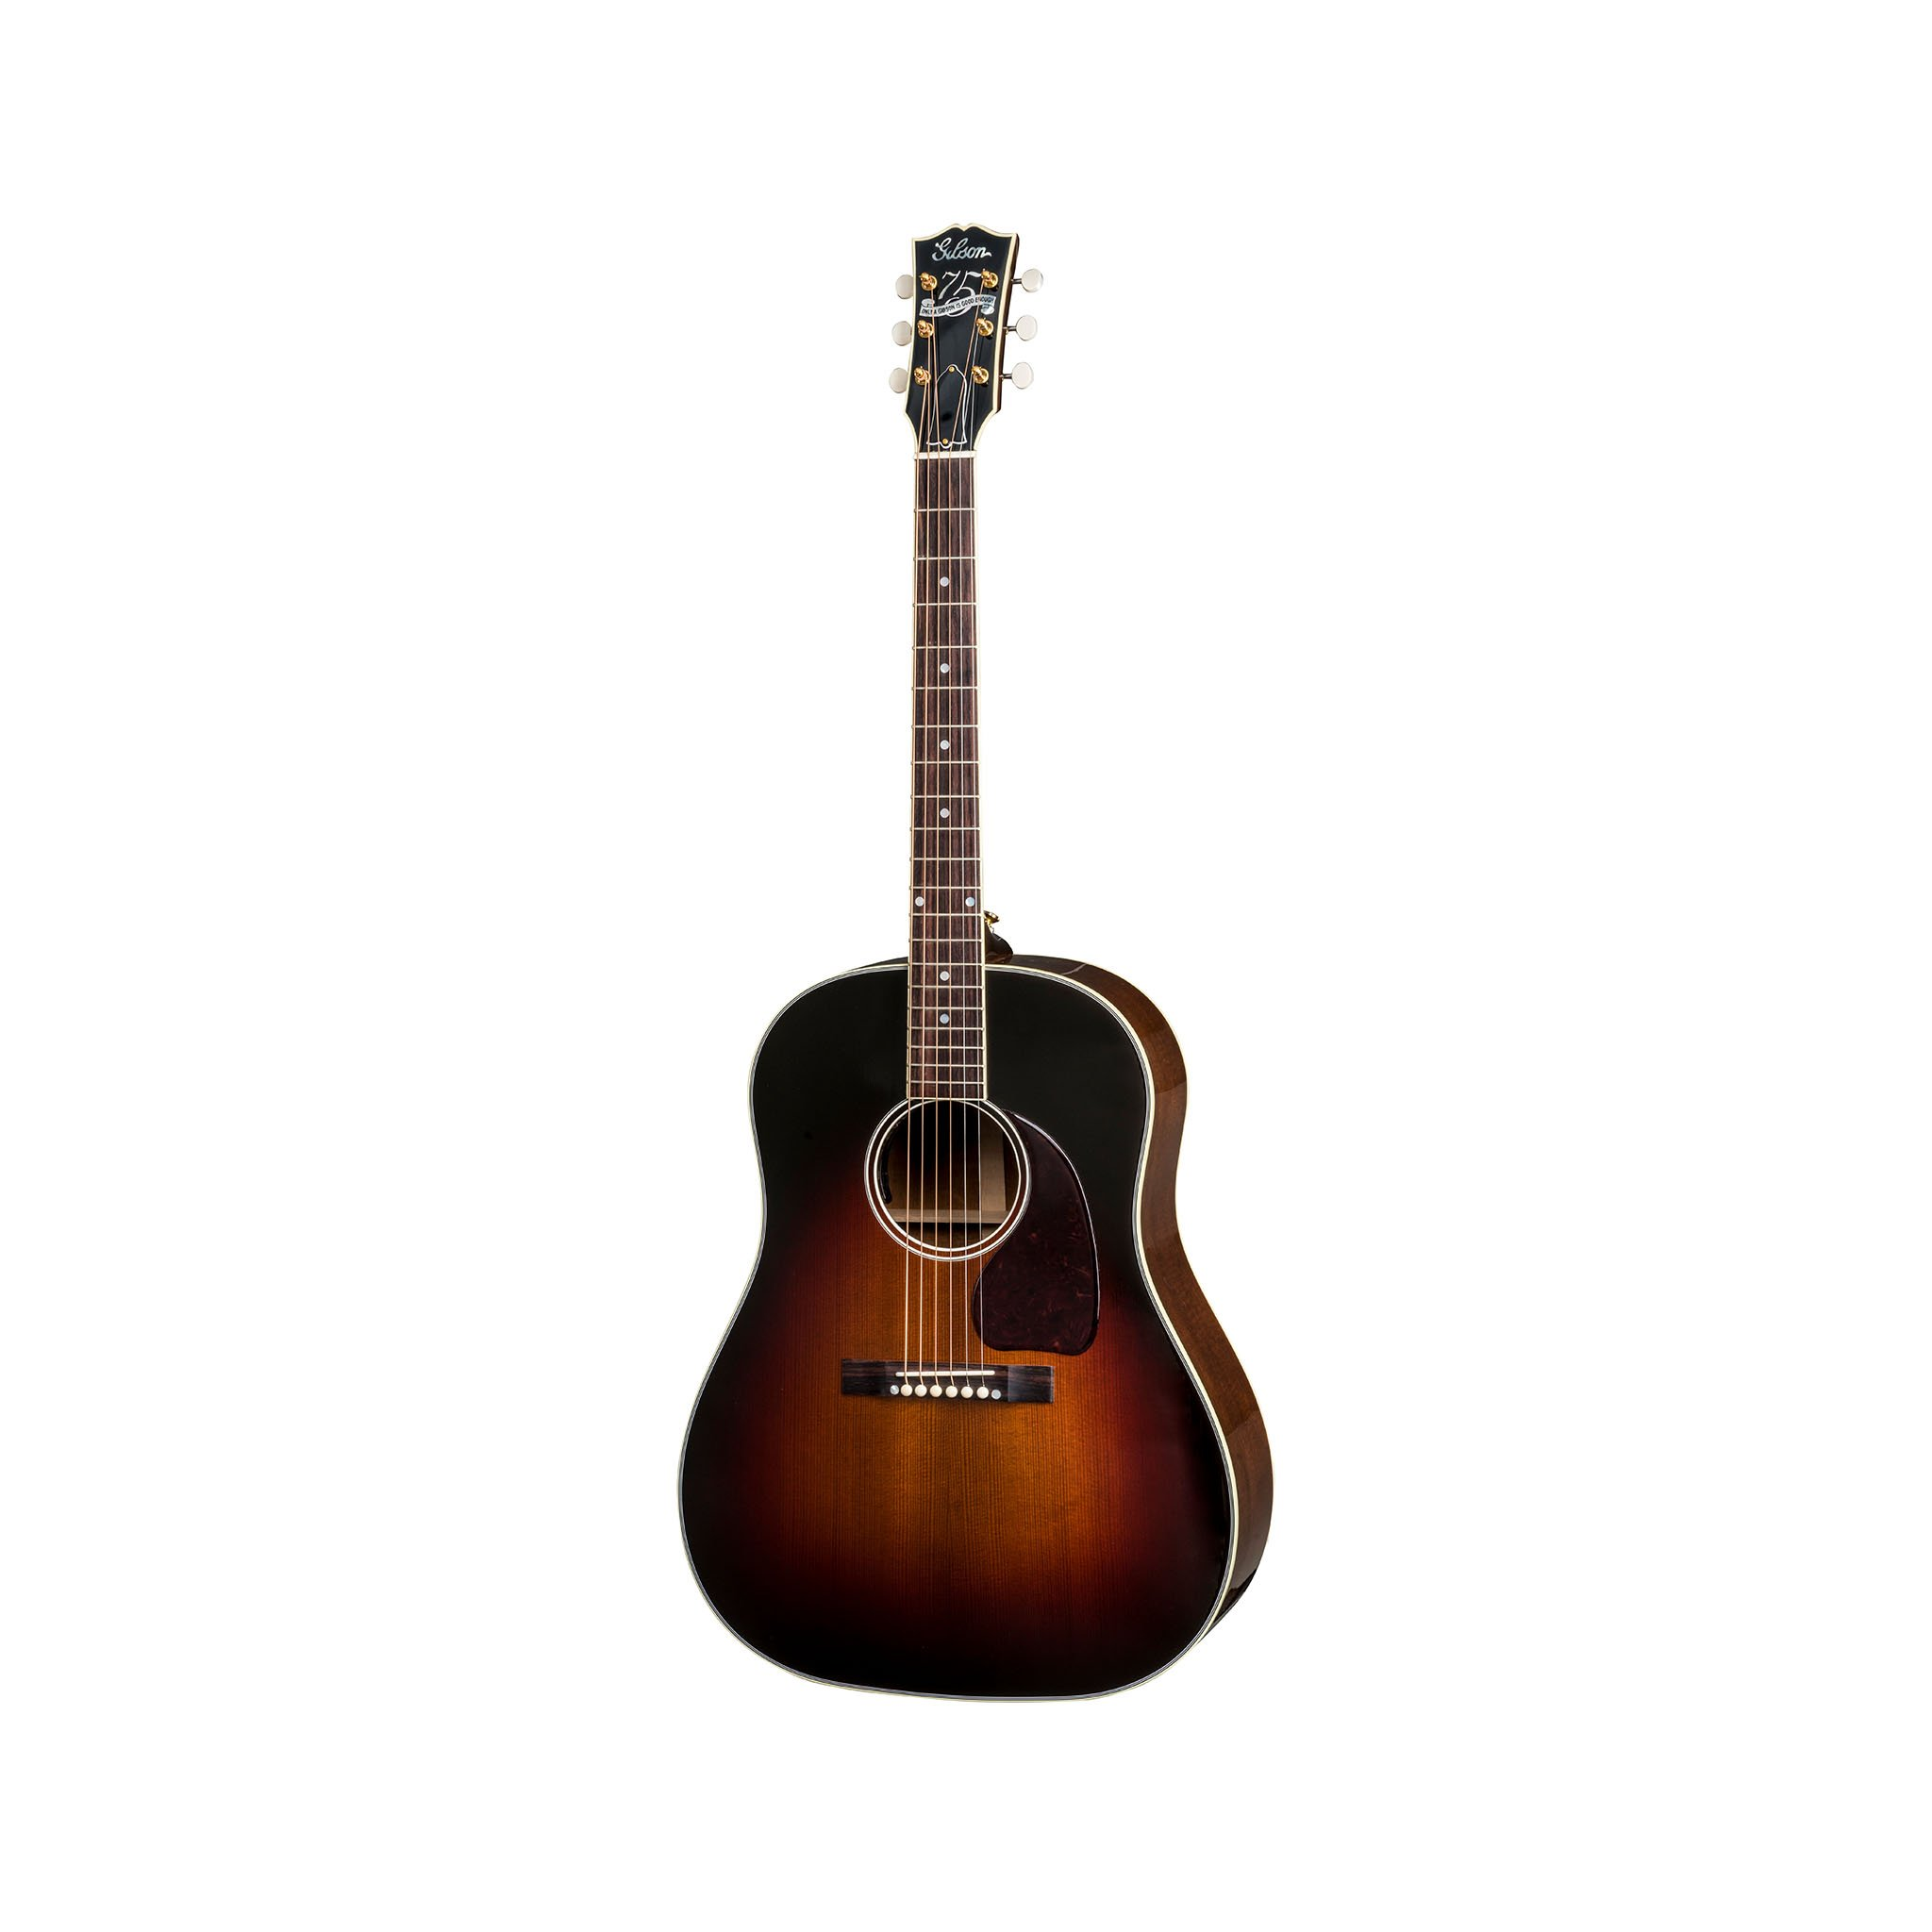 Gibson 2018 75th Anniversary J-45 Acoustic Guitar w/Case, Tribur